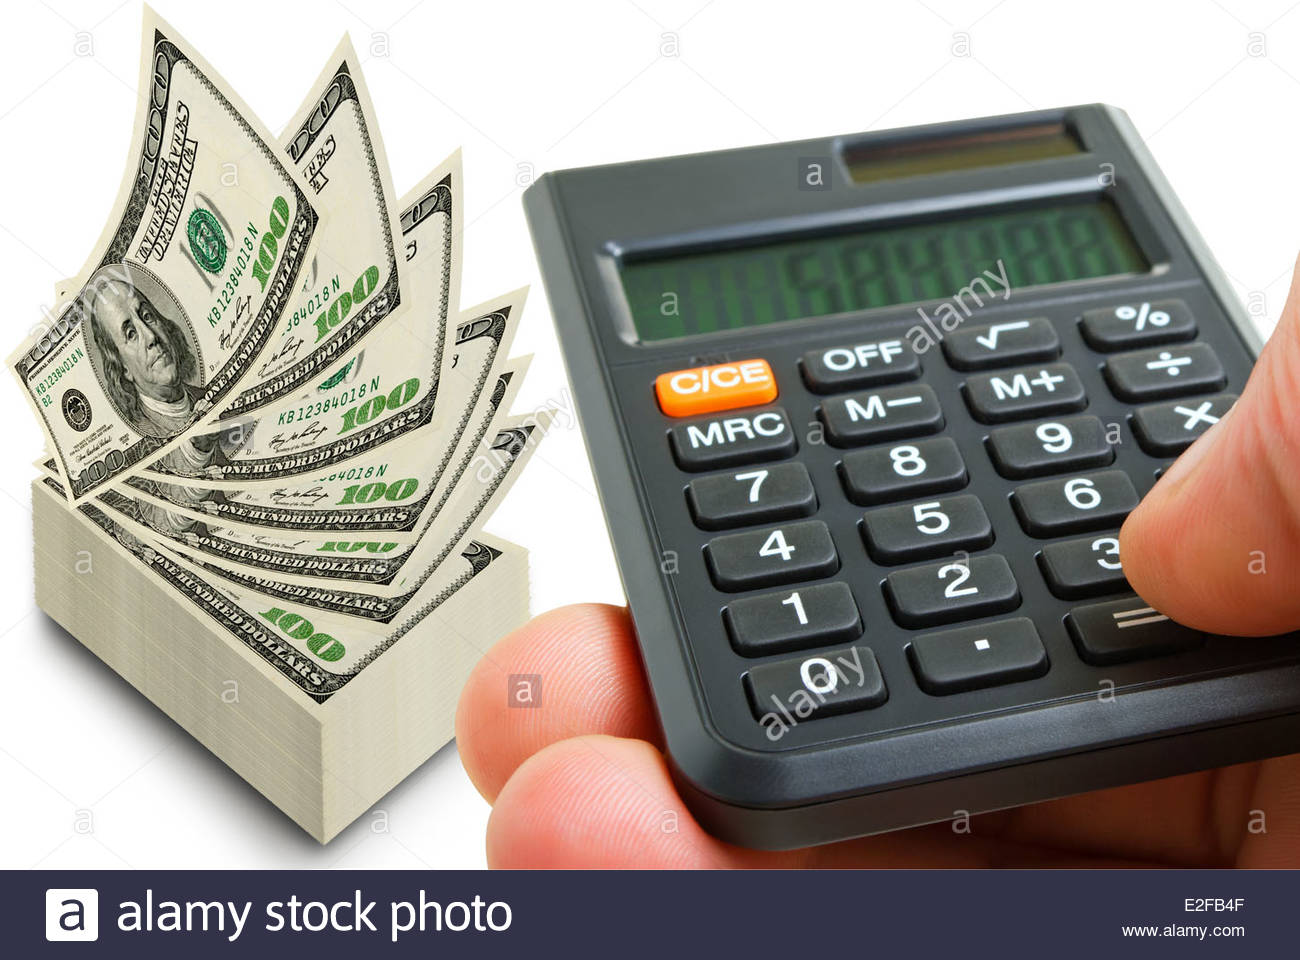 Getting quick returns on financial investments. - Stock Image